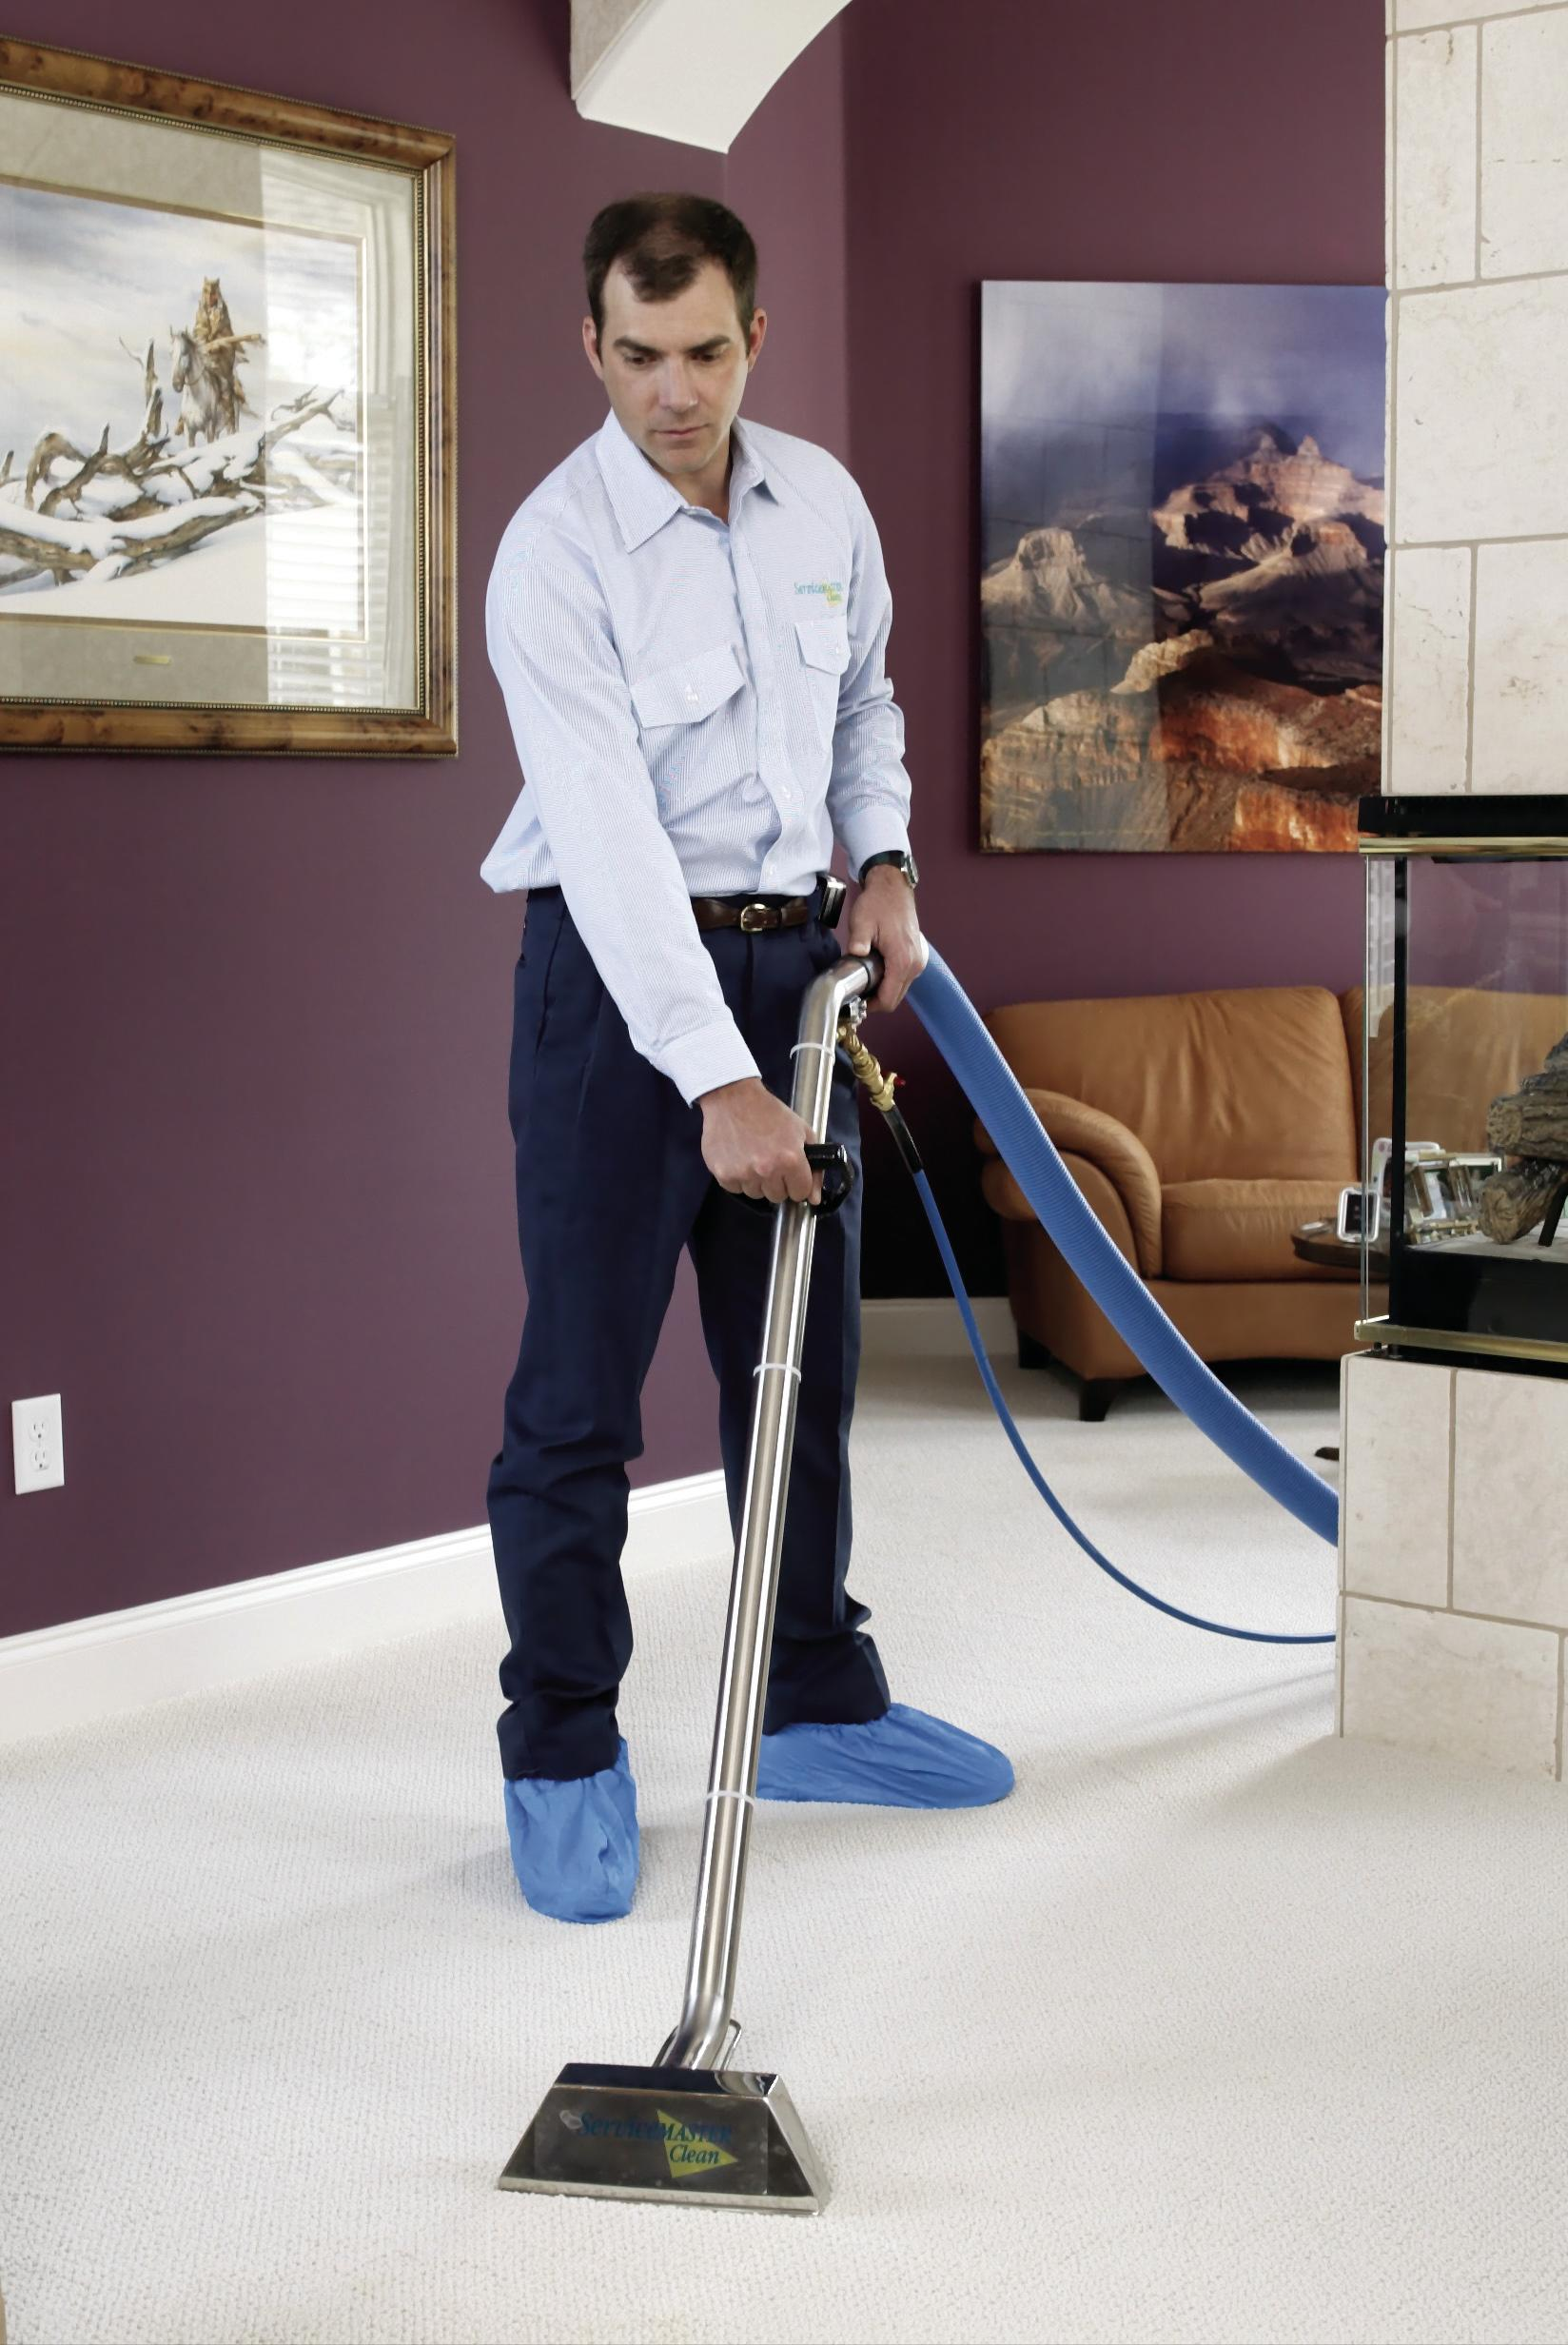 ServiceMaster Janitorial by Bustos image 11